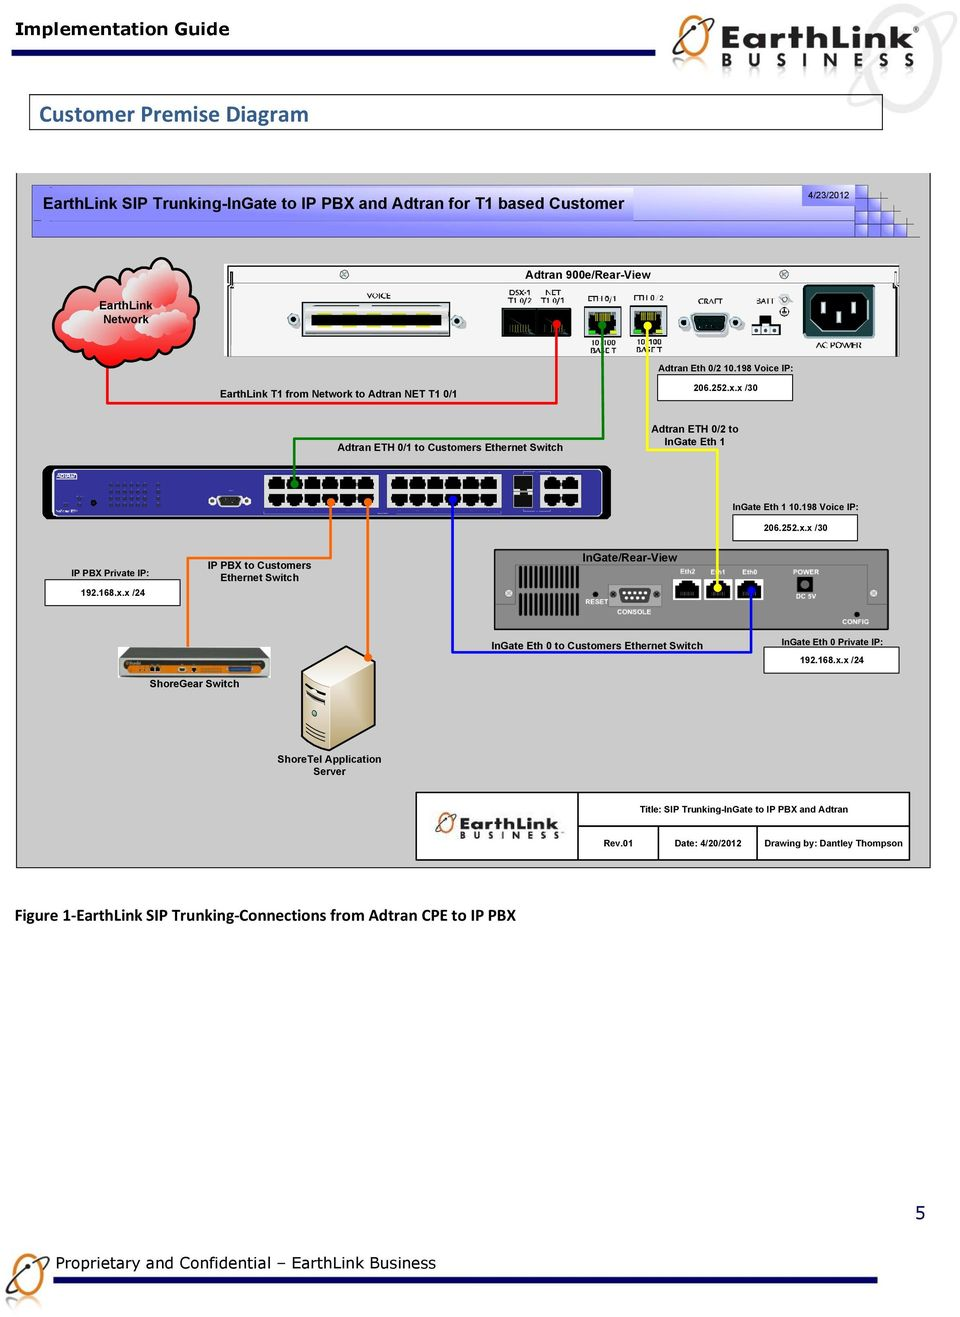 0/2 10.198 Voice IP: EarthLink T1 from Network to Adtran NET T1 0/1 206.252.x.x /30 Adtran ETH 0/1 to Customers Ethernet Switch Adtran ETH 0/2 to InGate Eth 1 InGate Eth 1 10.198 Voice IP: 206.252.x.x /30 IP PBX Private IP: 192.